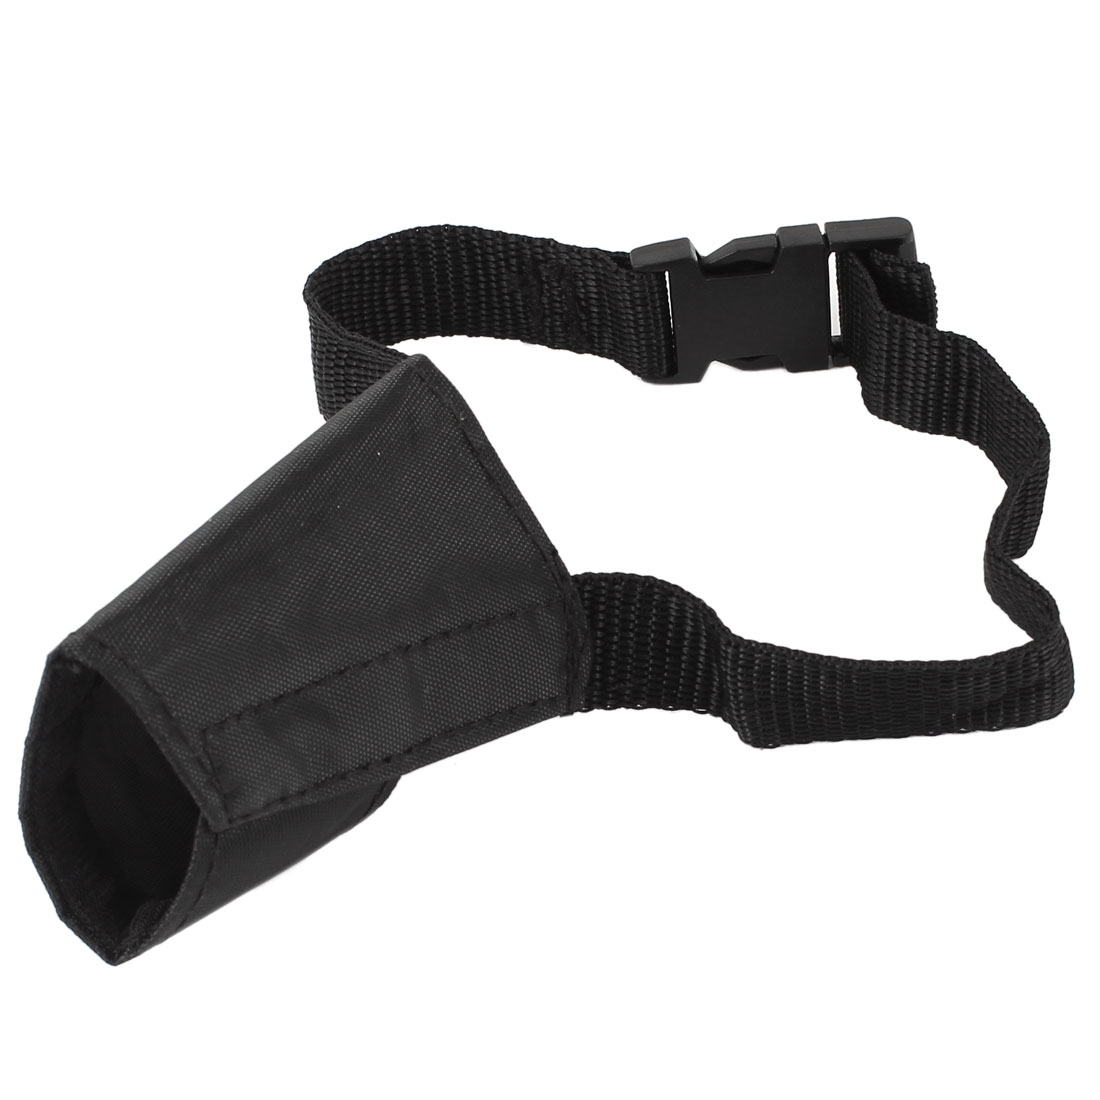 Adjustable Band Quick Release Buckle Anti Bark Bite Chew Muzzle Mask Guard Cover Black for Pet Dog Puppy